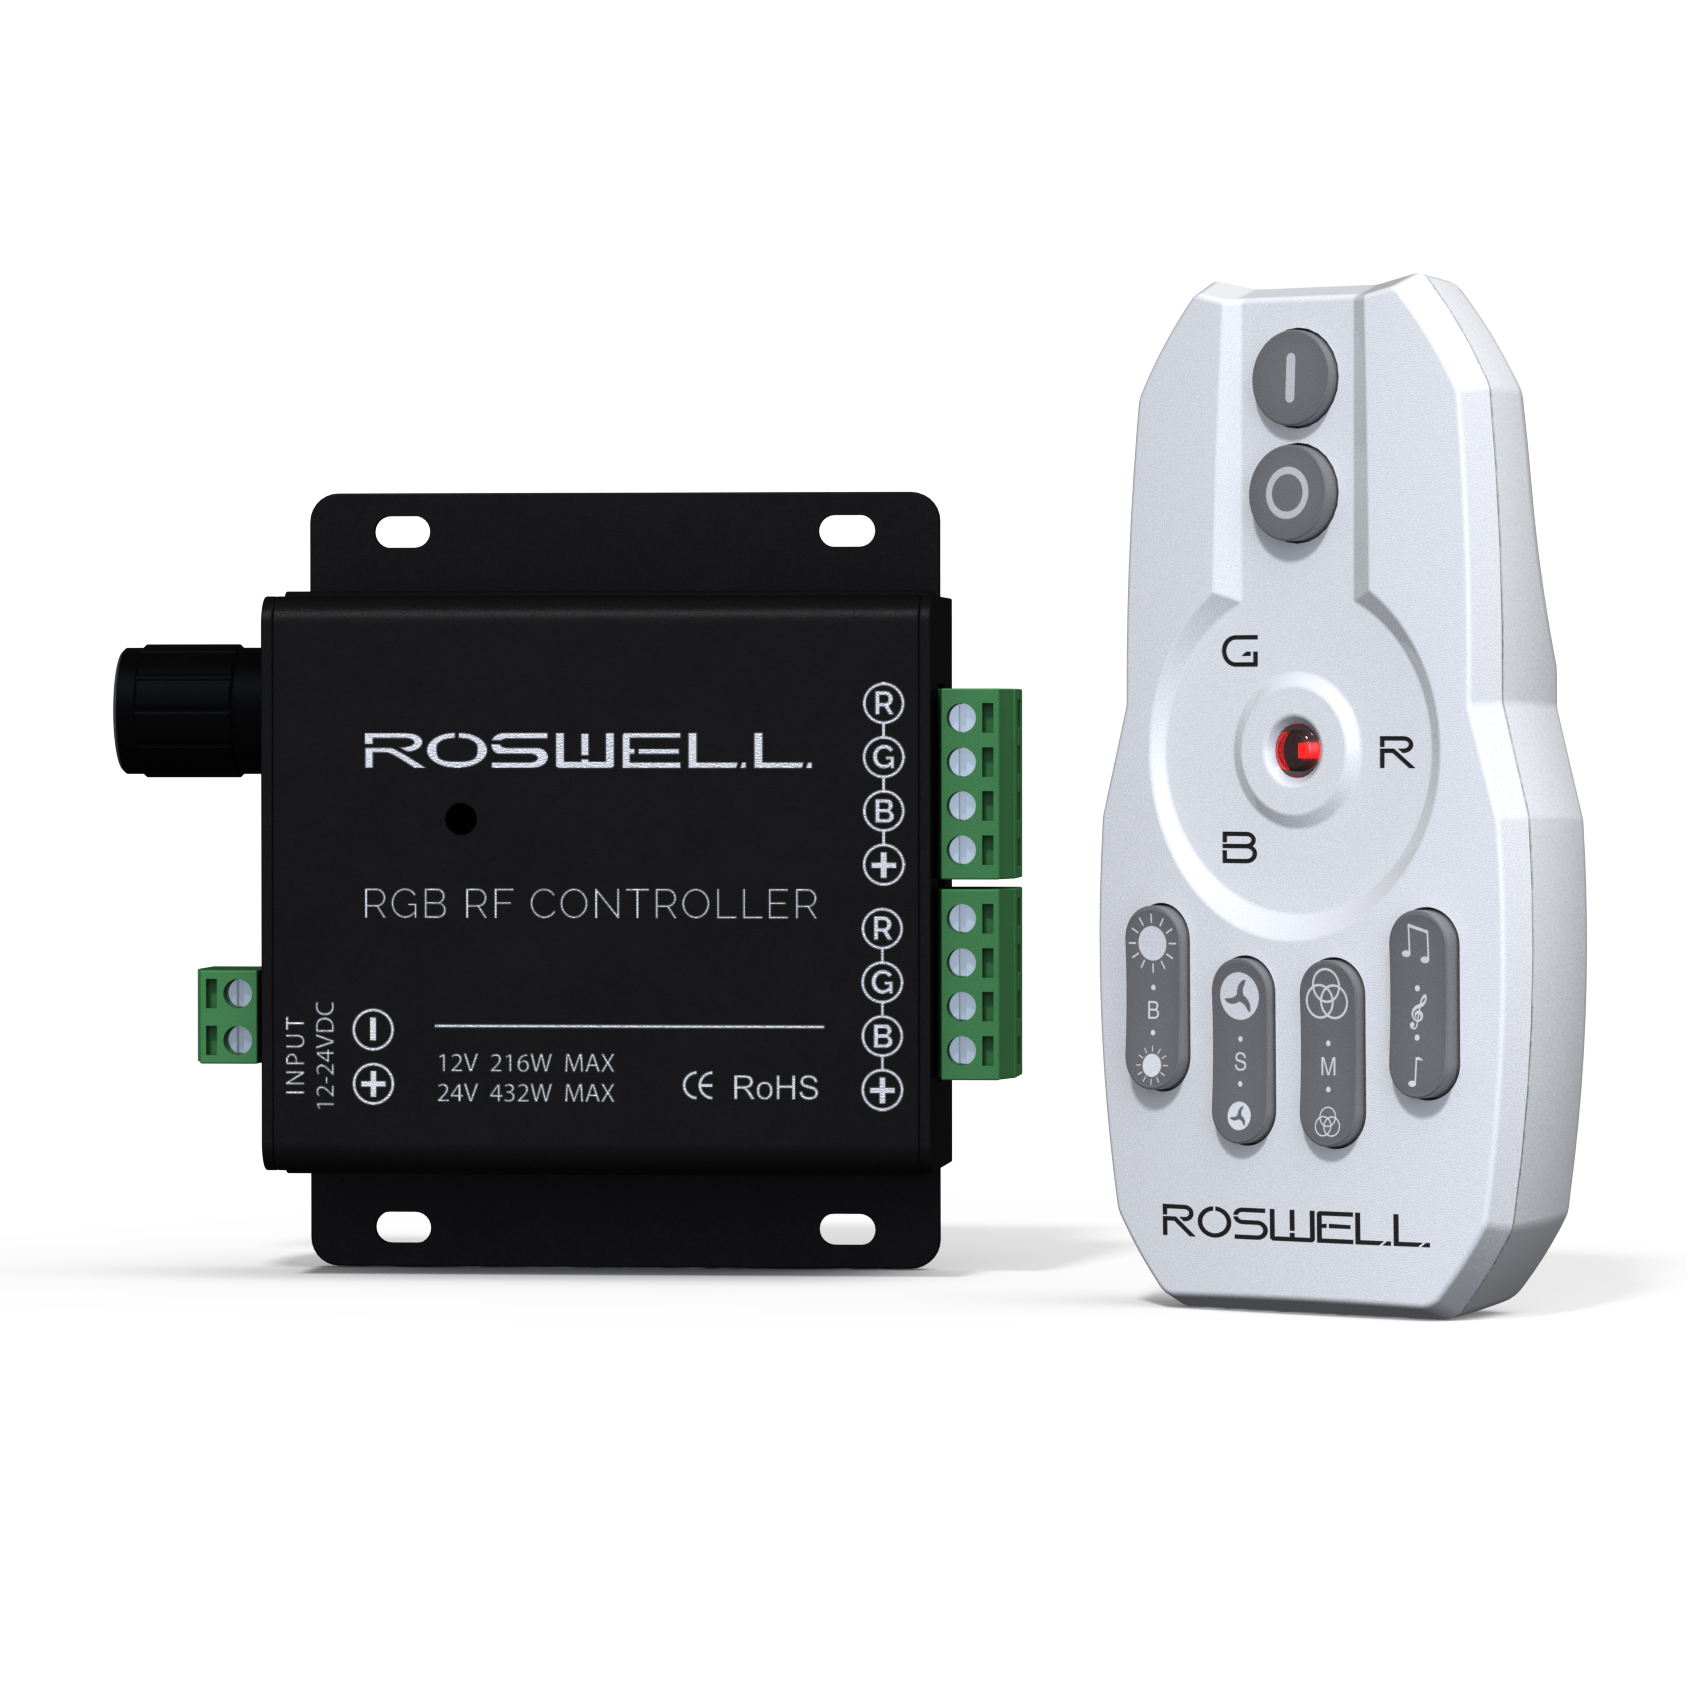 MARINE AUDIO RGB REMOTE & CONTROLLER PACKAGE ROSWELL 2018